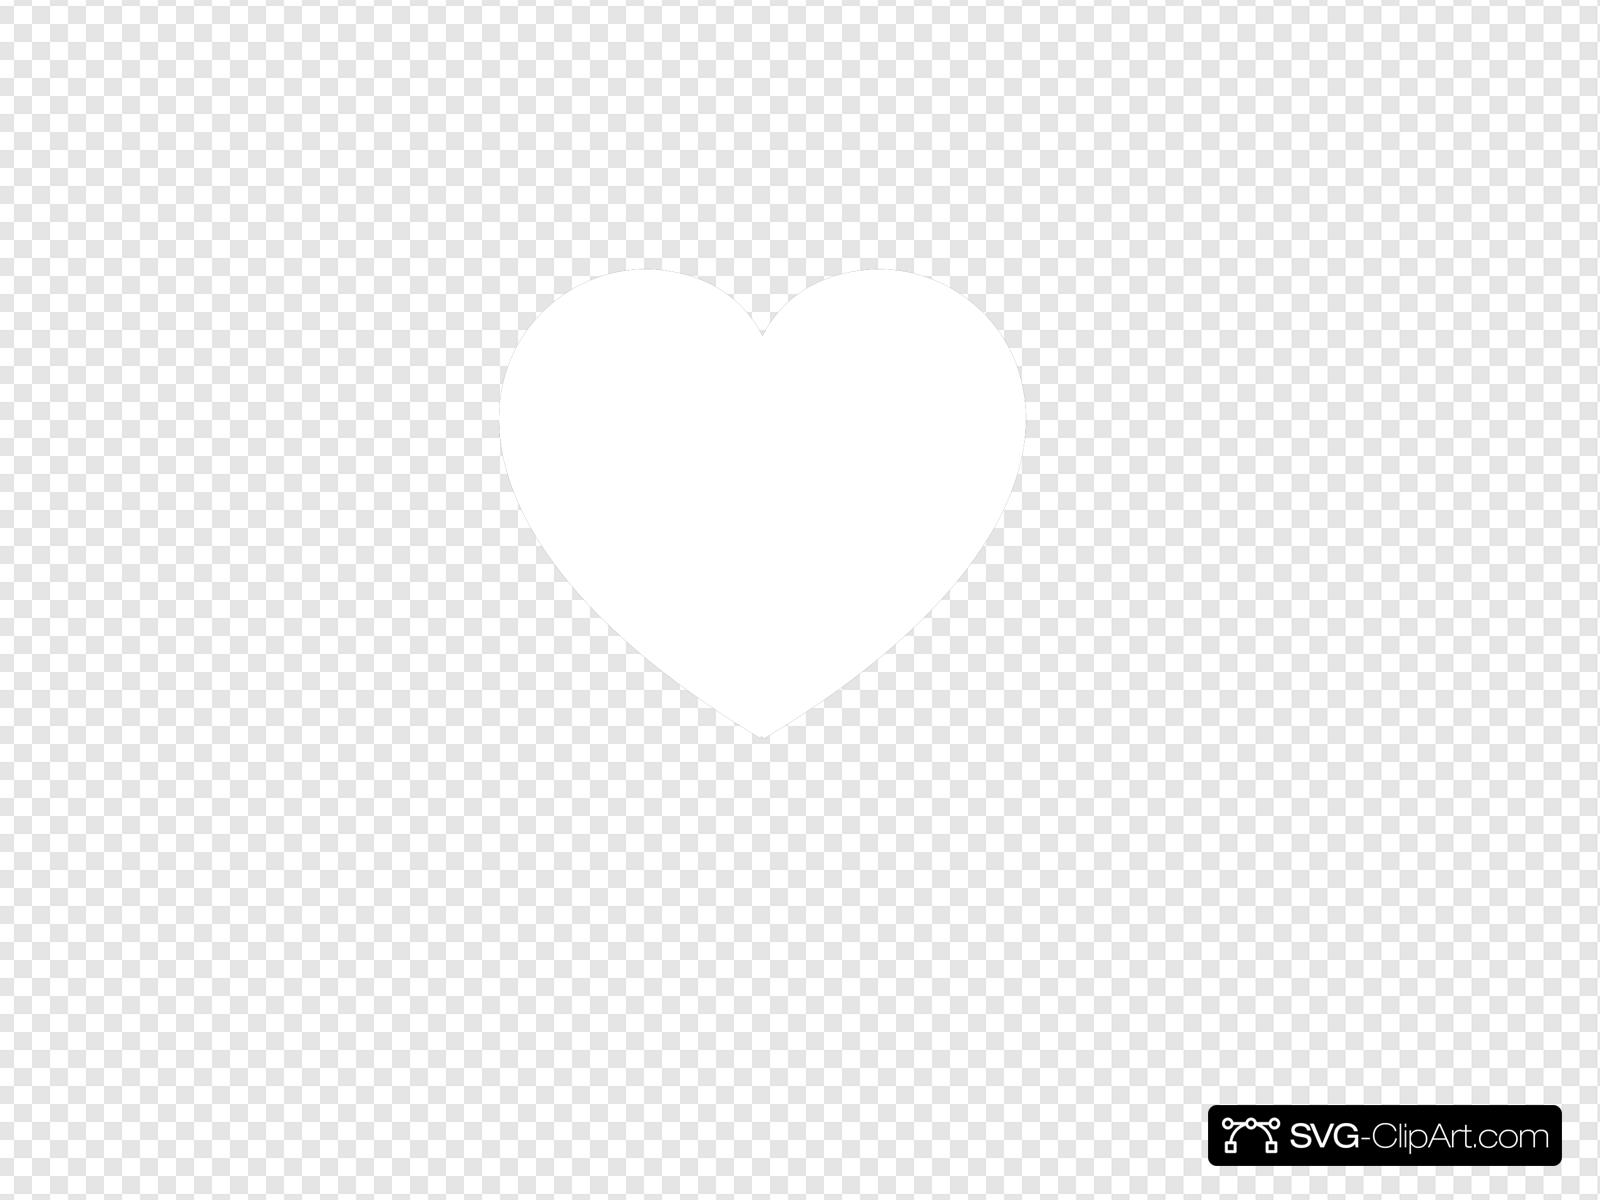 White heart clipart transparent background image free White Heart Clip art, Icon and SVG - SVG Clipart image free